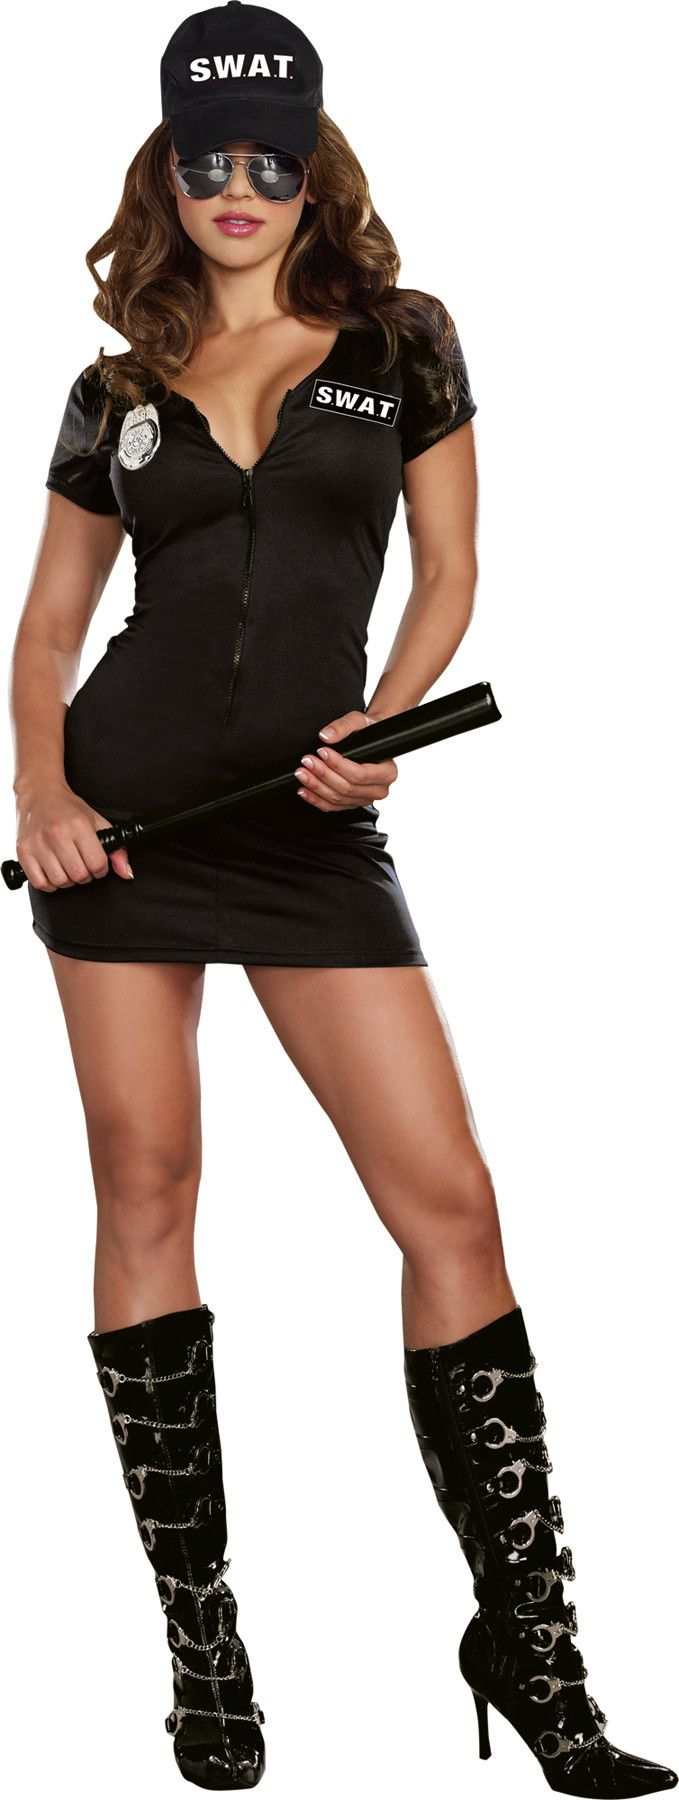 "Set your ground rules and start regulating tonight in this hot black dress with front zipper, ""S.W.A.T."" screen print, hat and police badge. 100% polyester. Fits adult women's xxxlarge sizes 18-20."